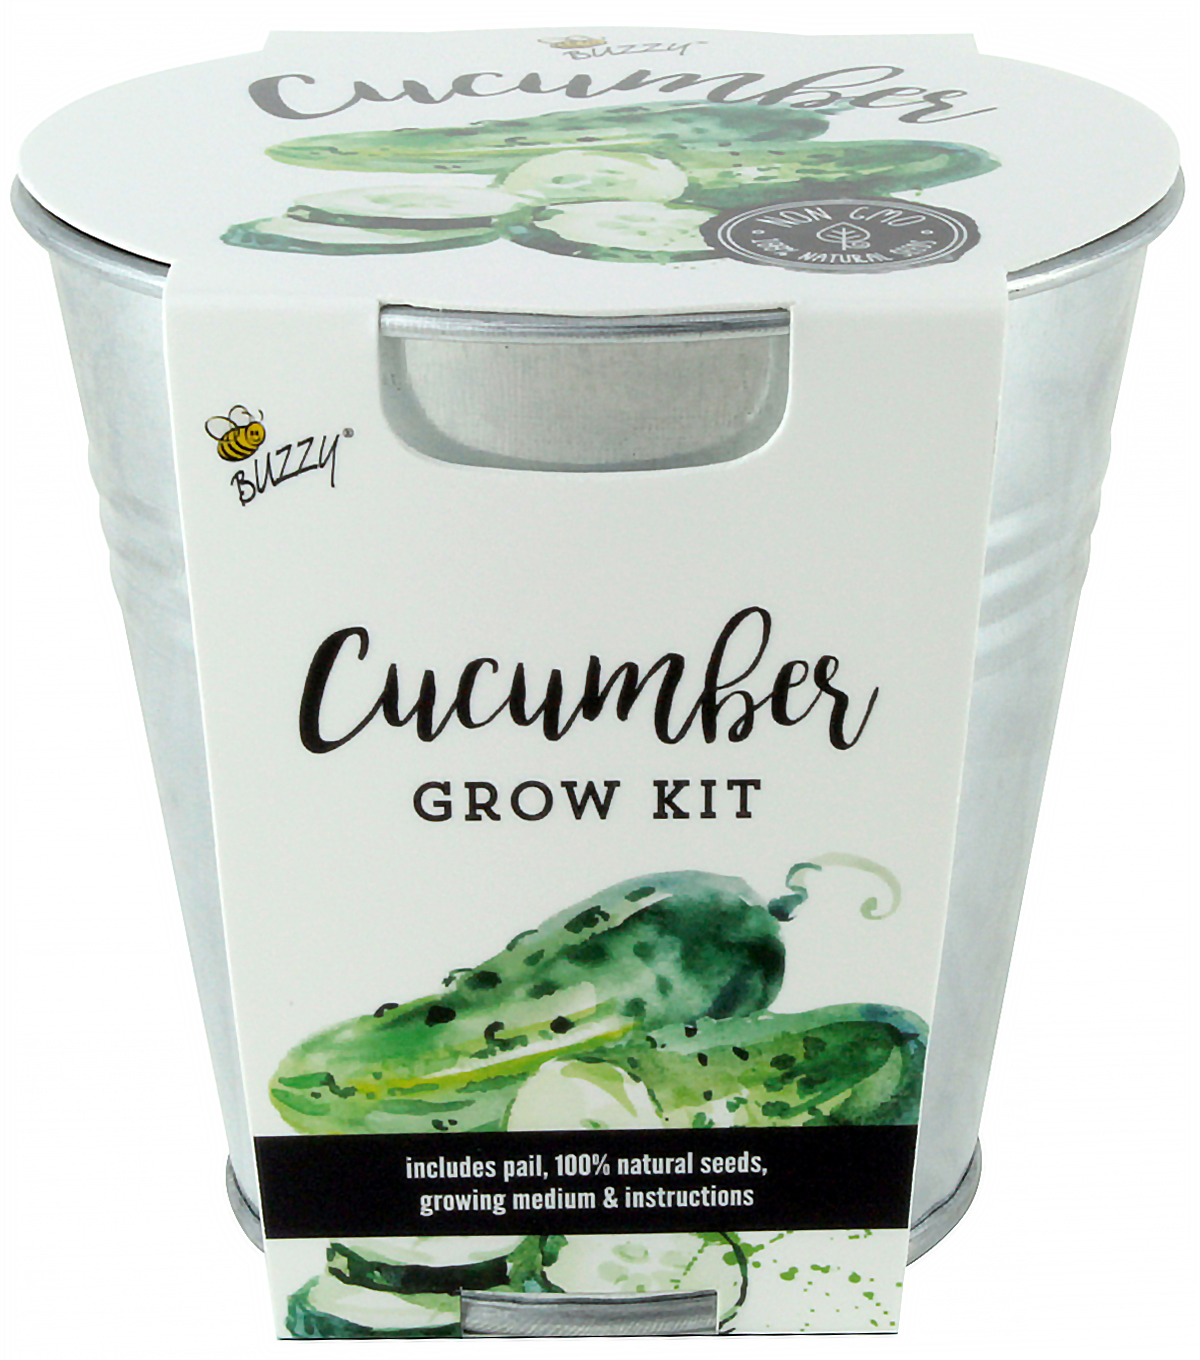 Buzzy Cucumber DIY Grow Kit with Galvanized Metal Pail